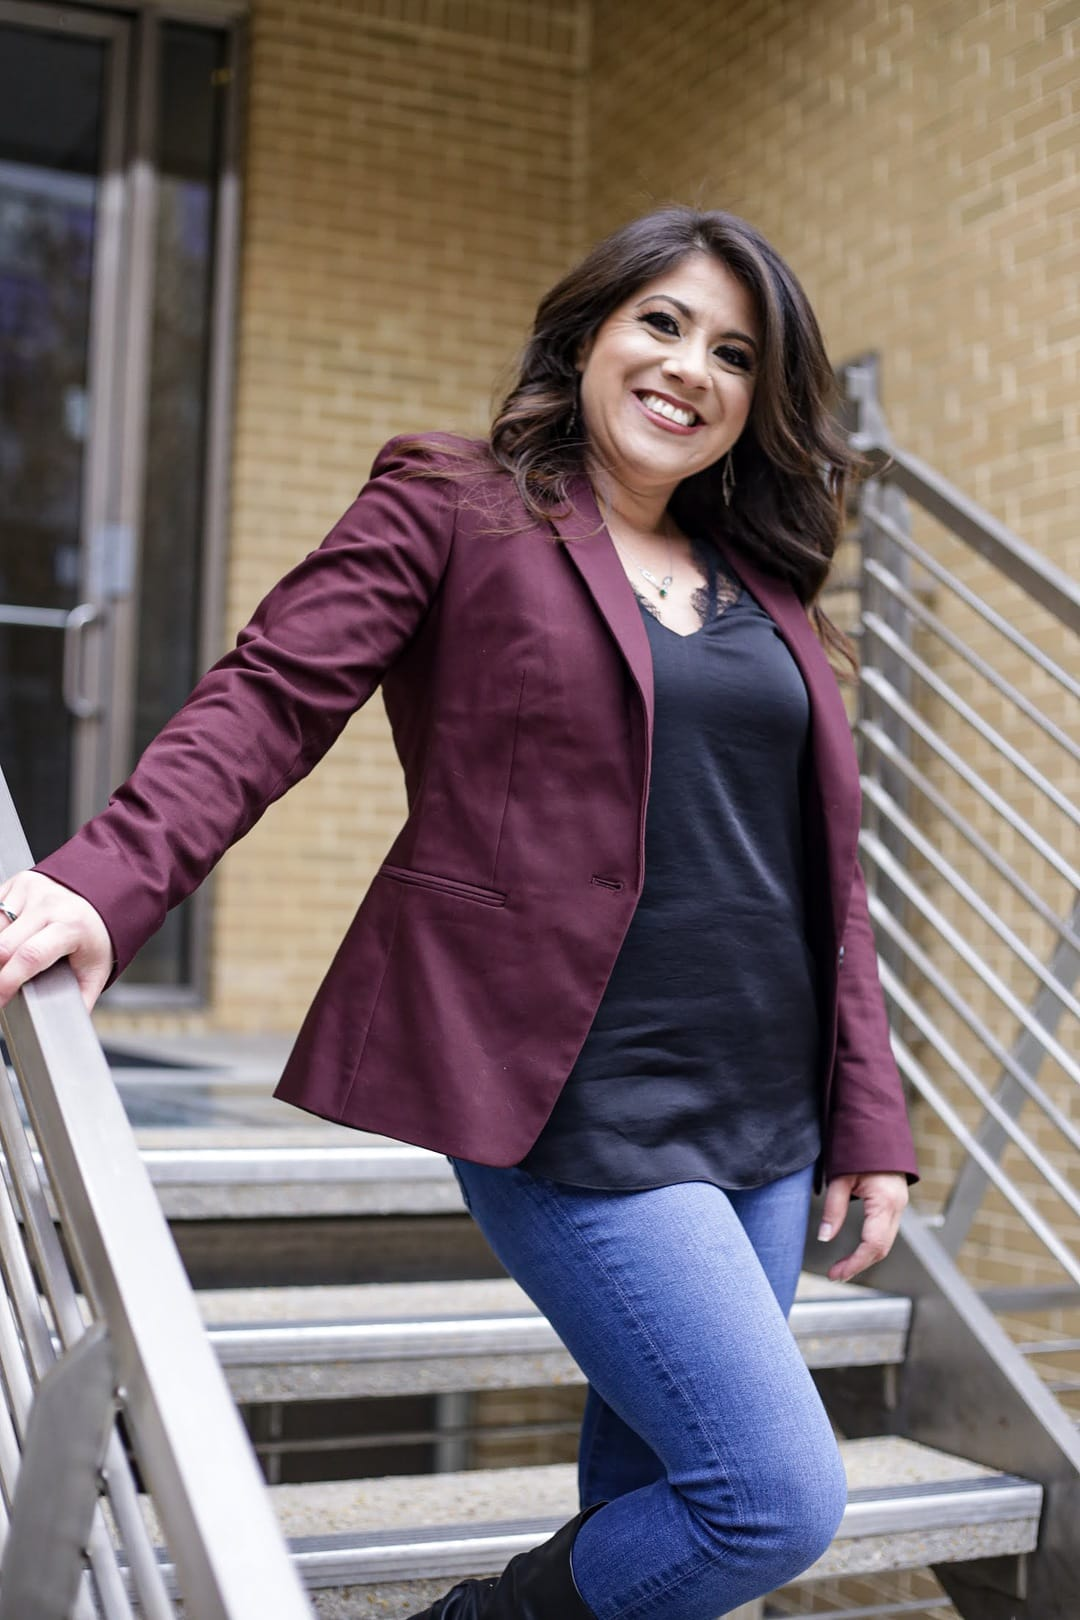 Wendie V standing in jeans, black shirt, and maroon blazer on stairs holding the railing and smiling